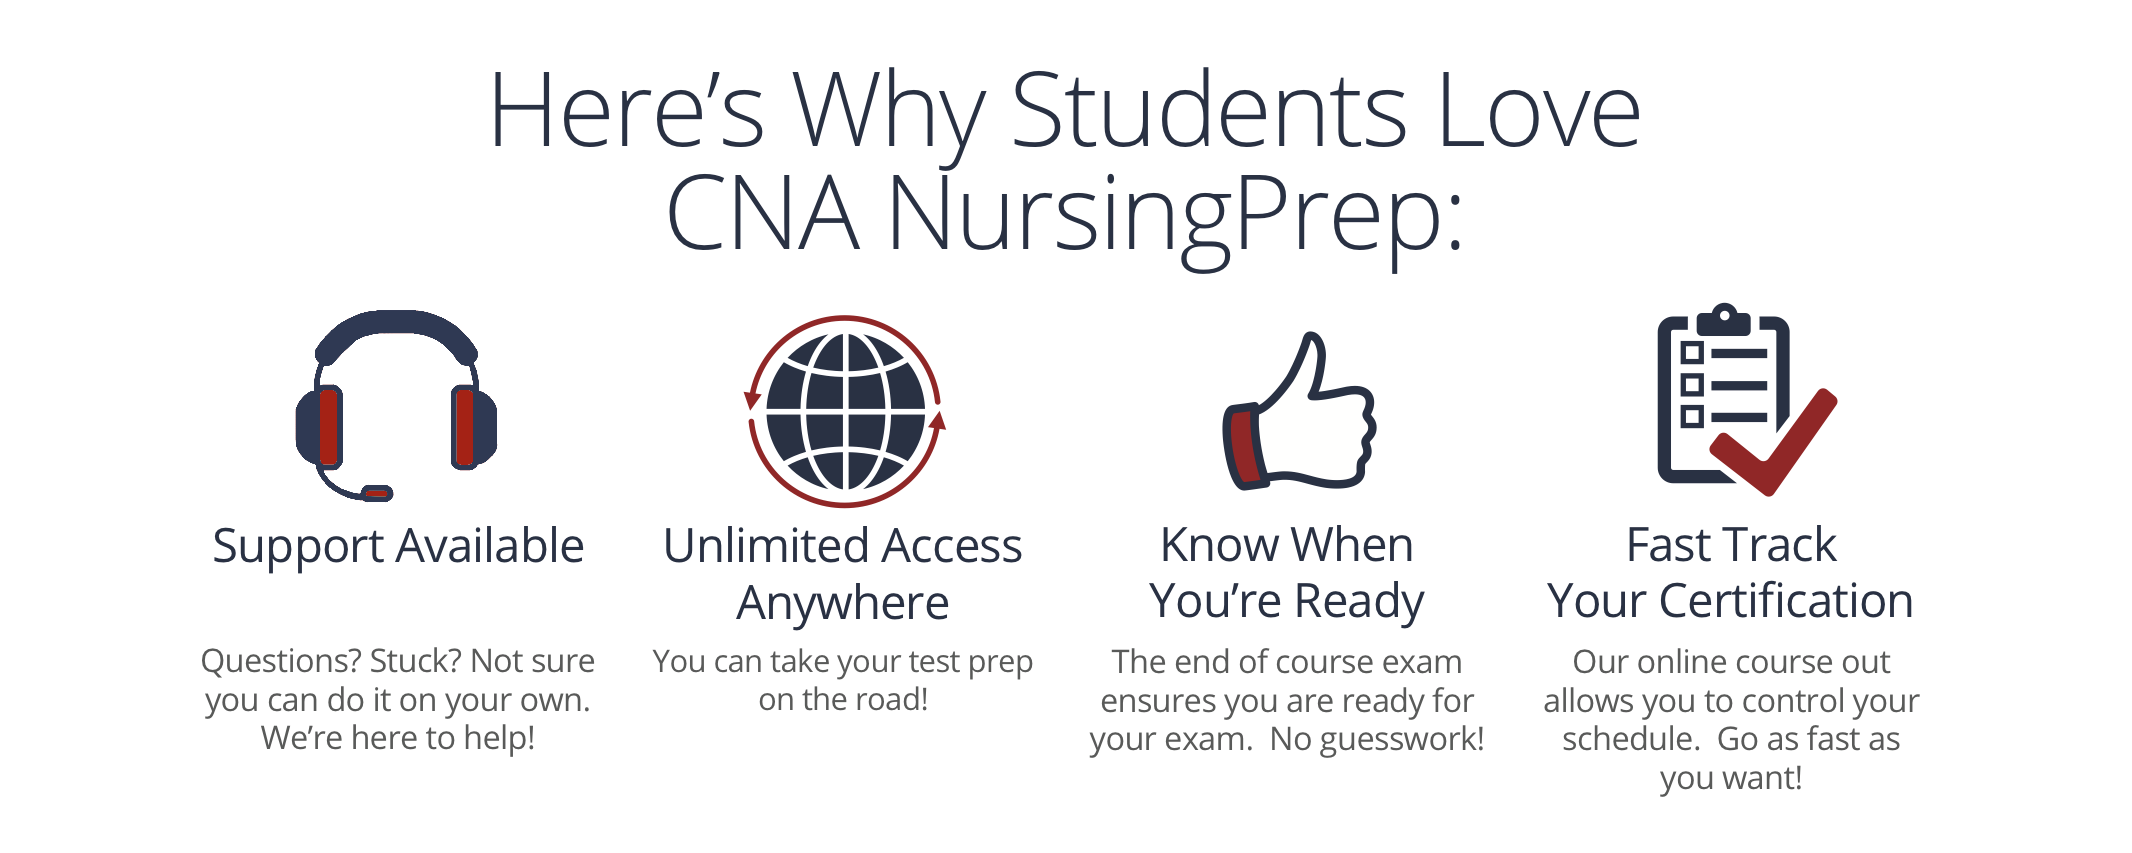 Certified nursing assistant cna nursingprep if you are unsatisfied with your purchase contact us within the first 5 days and we will give you a full refund if you complete all coursework and receive xflitez Images